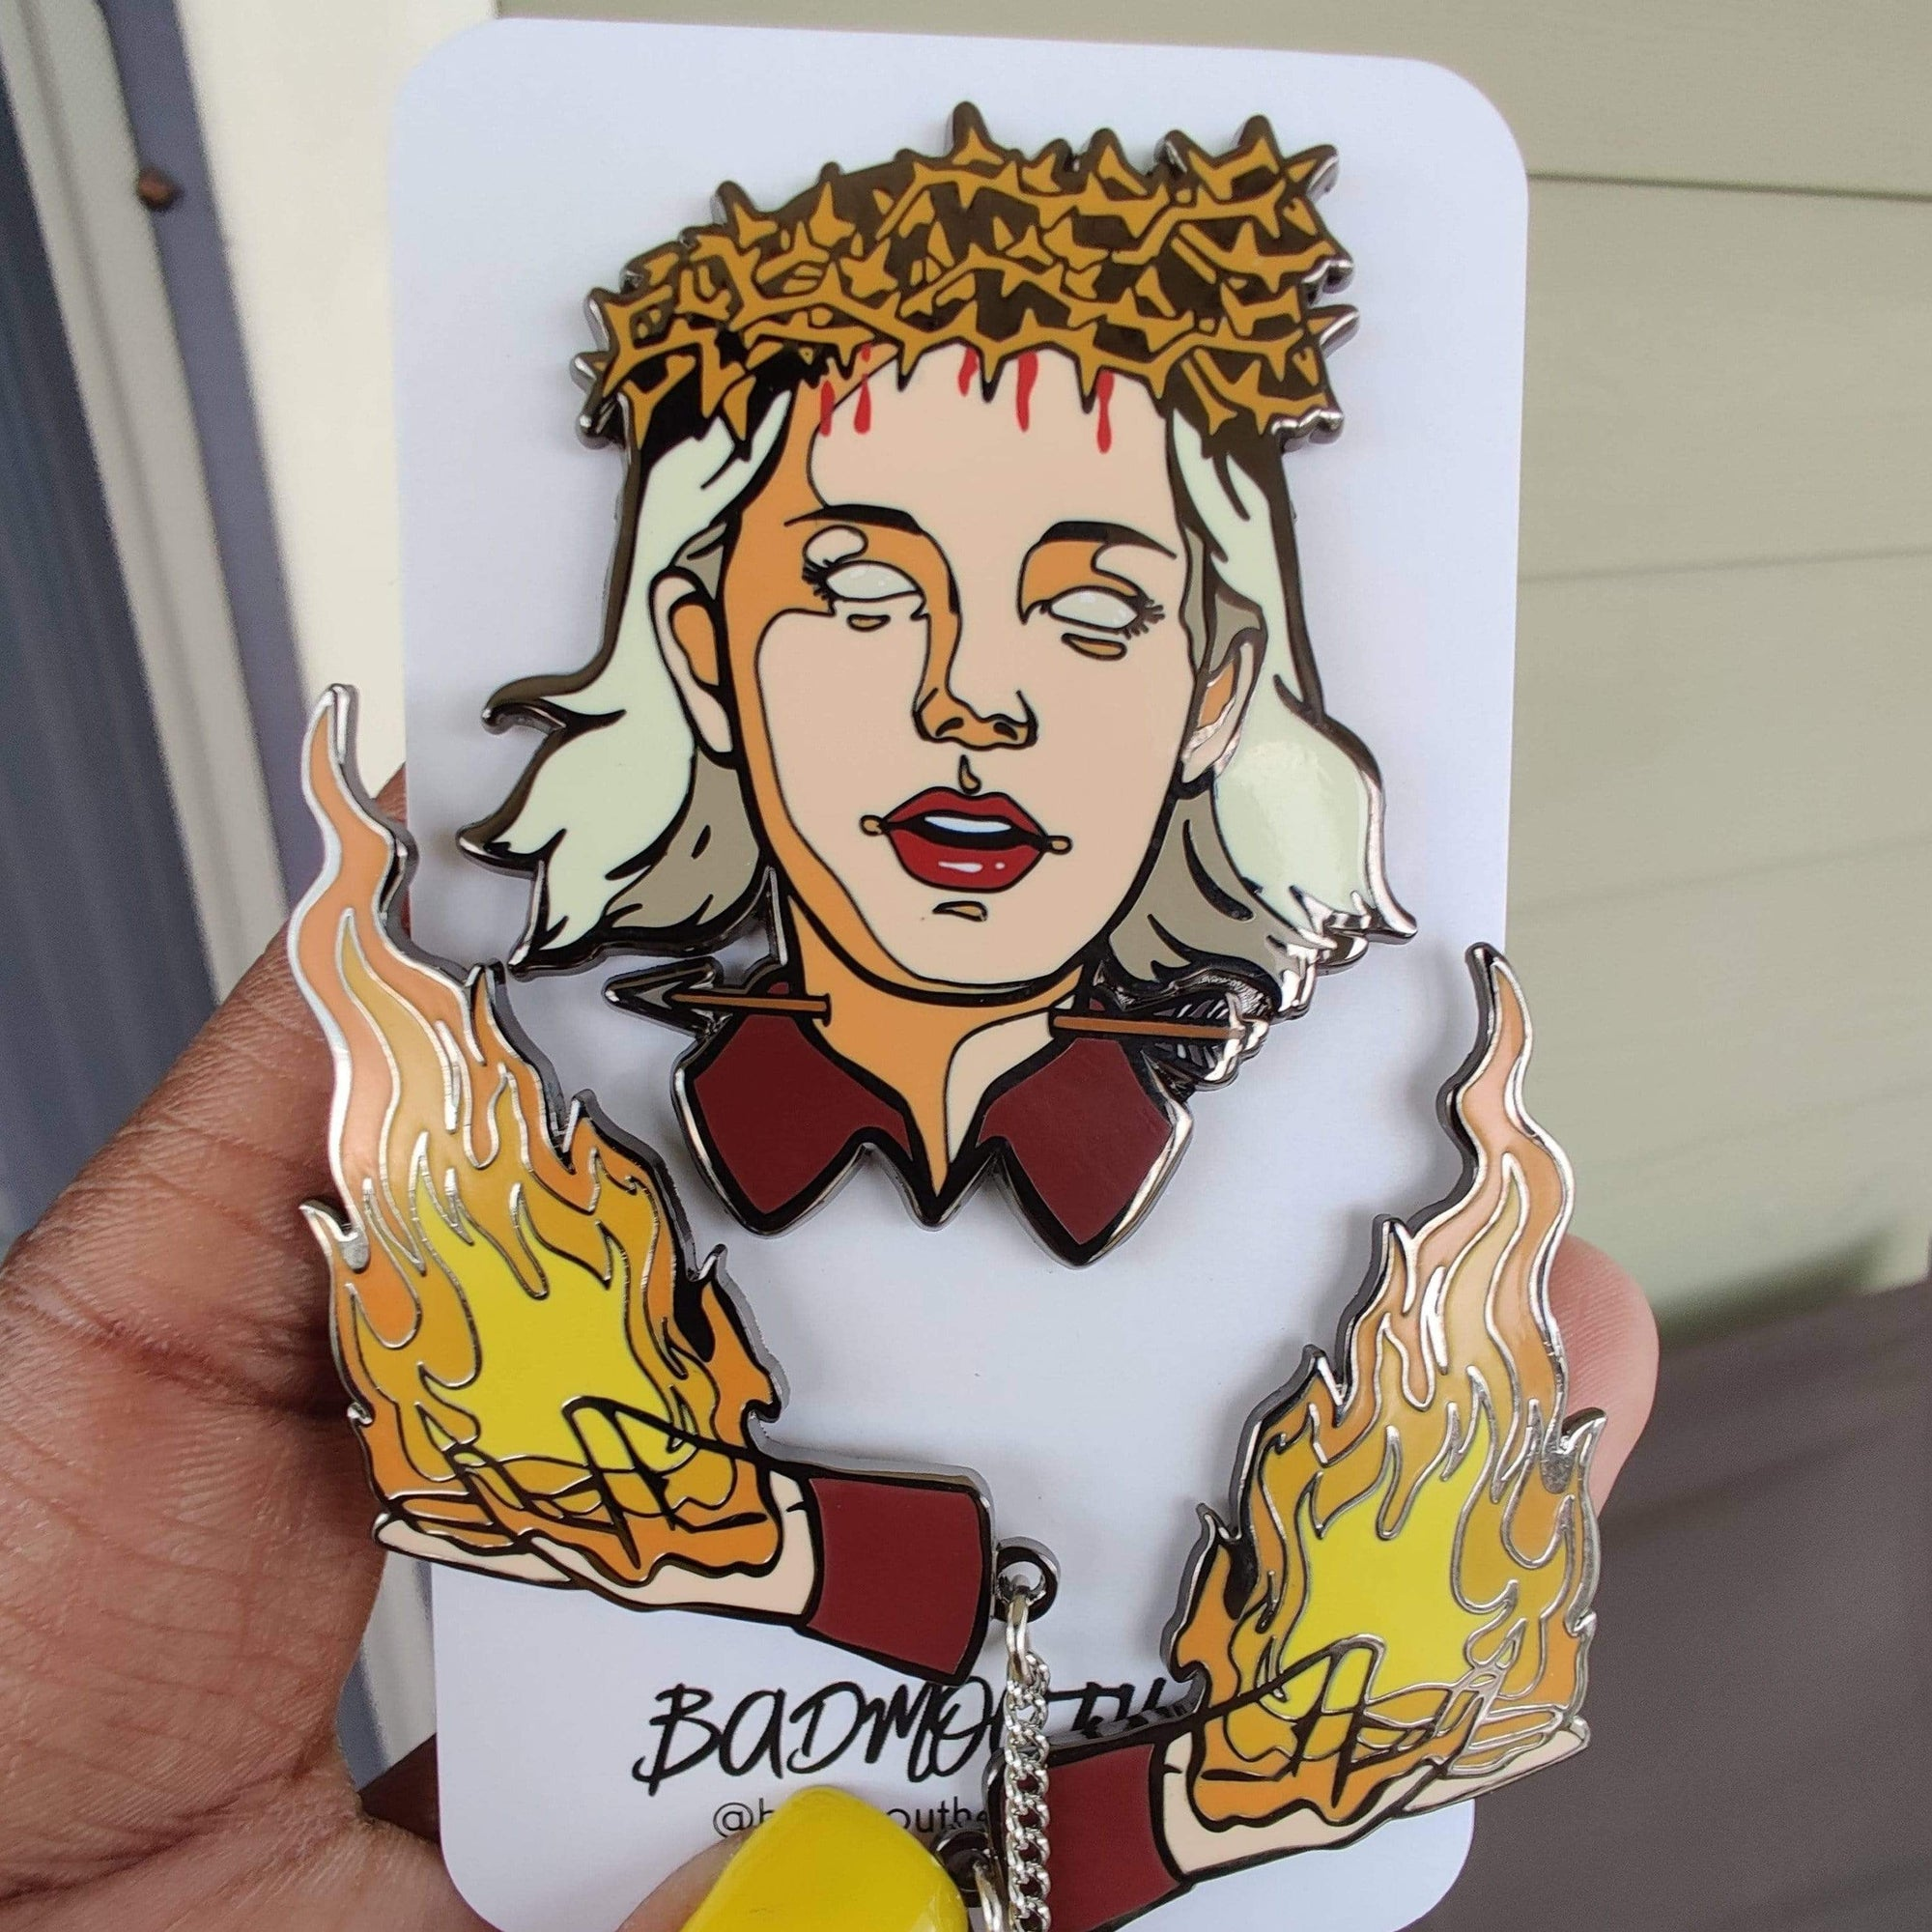 Sabrina Spellman Enamel Pin Witch Enamel Pin The Chilling Adventures of sabrina